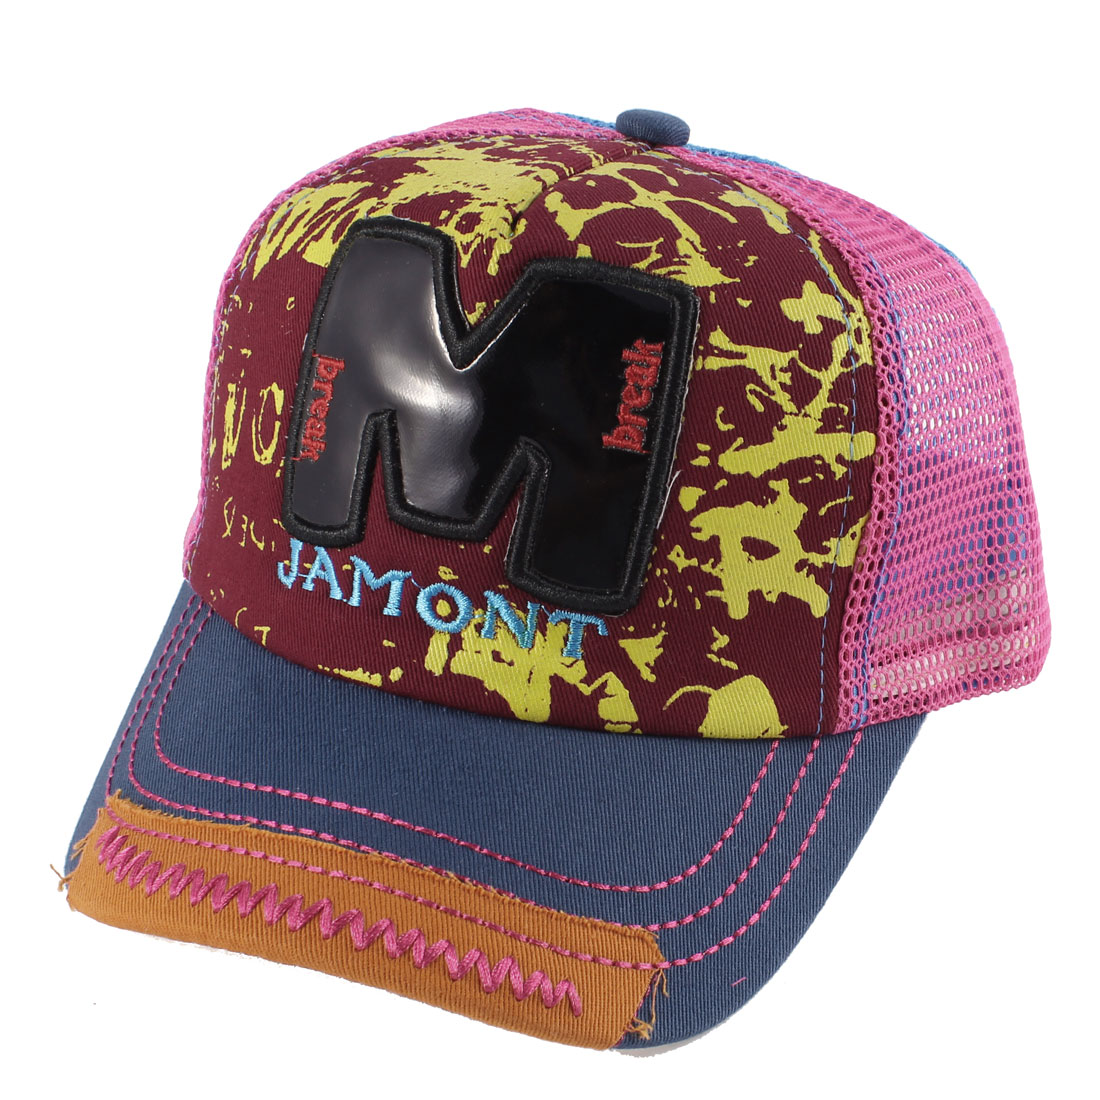 Unisex Letters Print Embellished Front Casual Summer Peaked Cap Blue Red